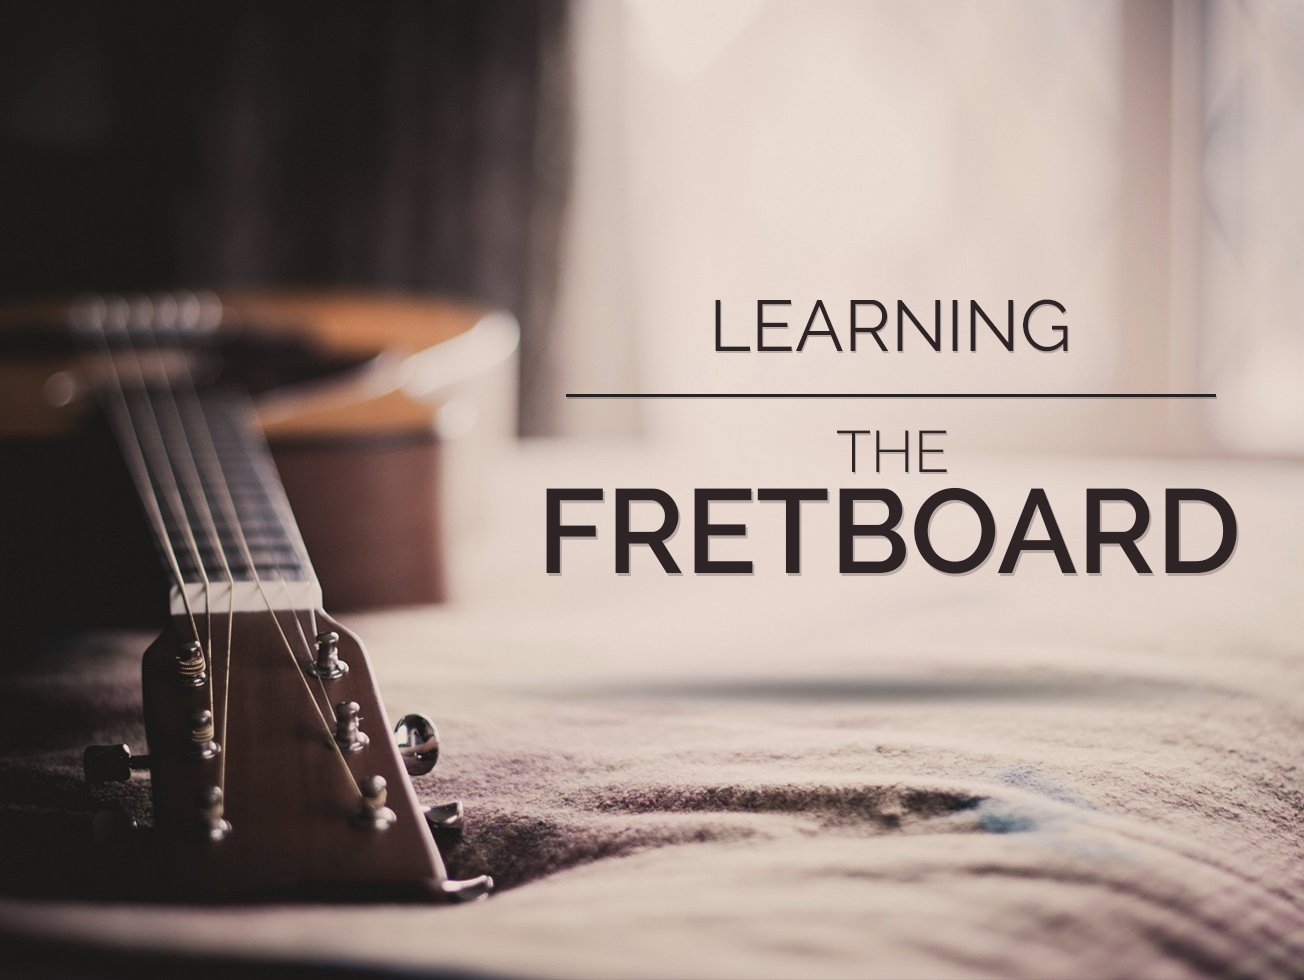 Learning The Fretboard Guitar Lesson World Learn How To Read Chord Diagrams Are Graphics That Tell